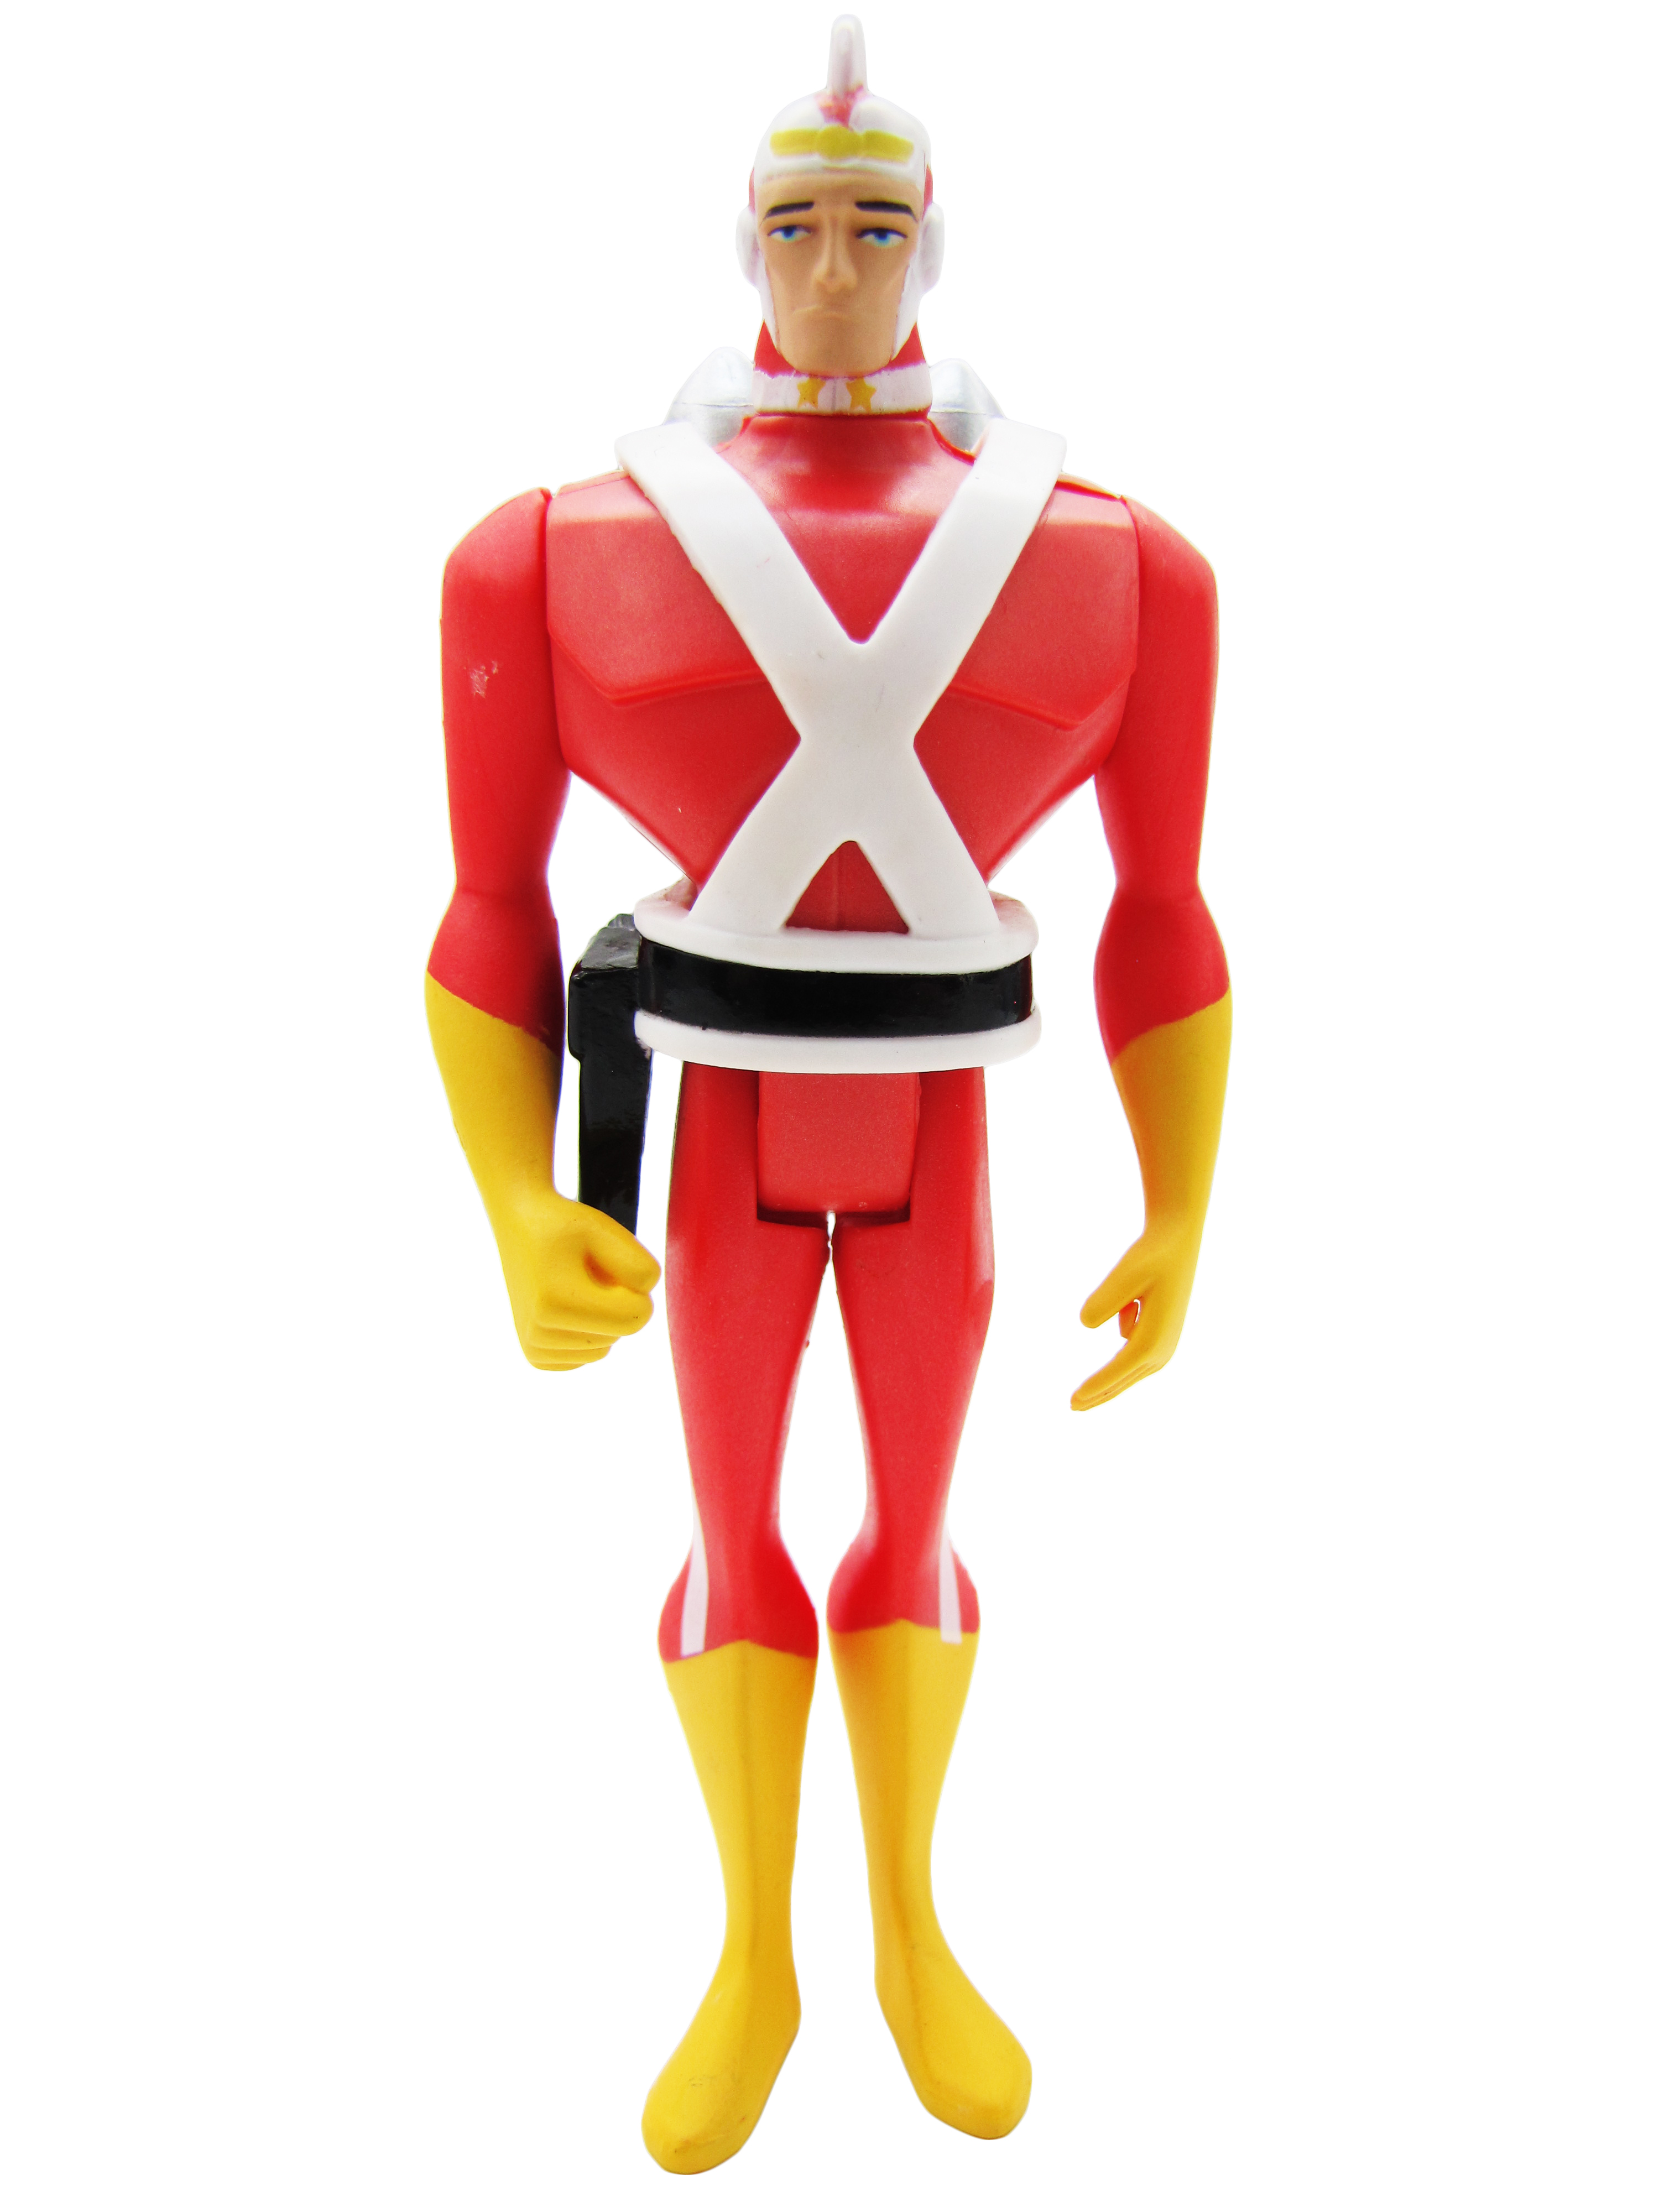 2012 Justice League Unlimited STRANGE ADVENTURES ADAM STRANGE Mint